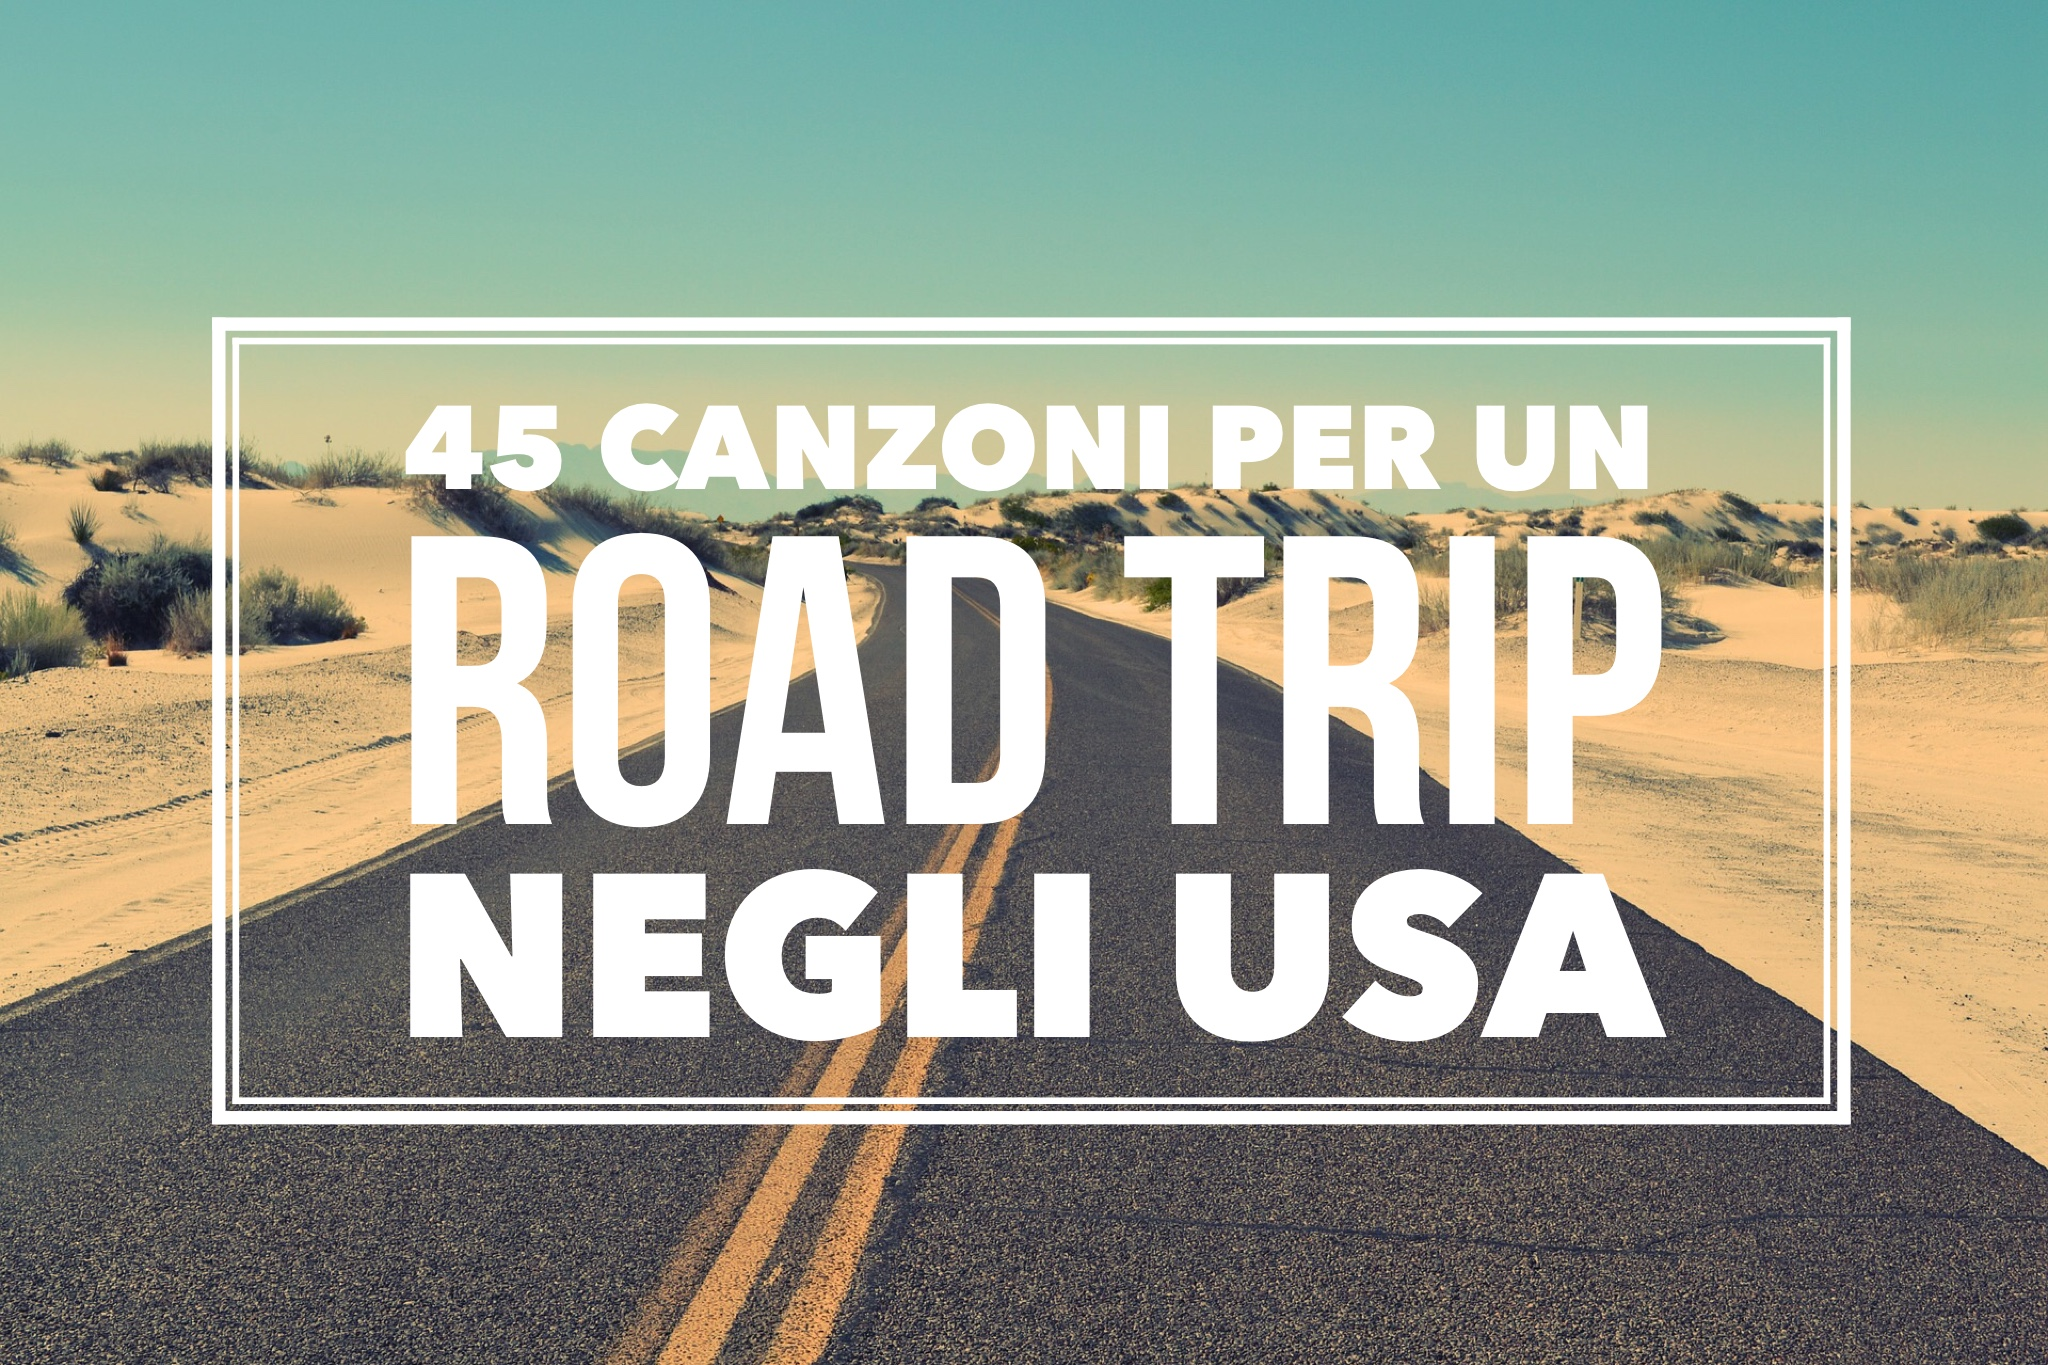 45 canzoni per un viaggio on the road negli USA 4